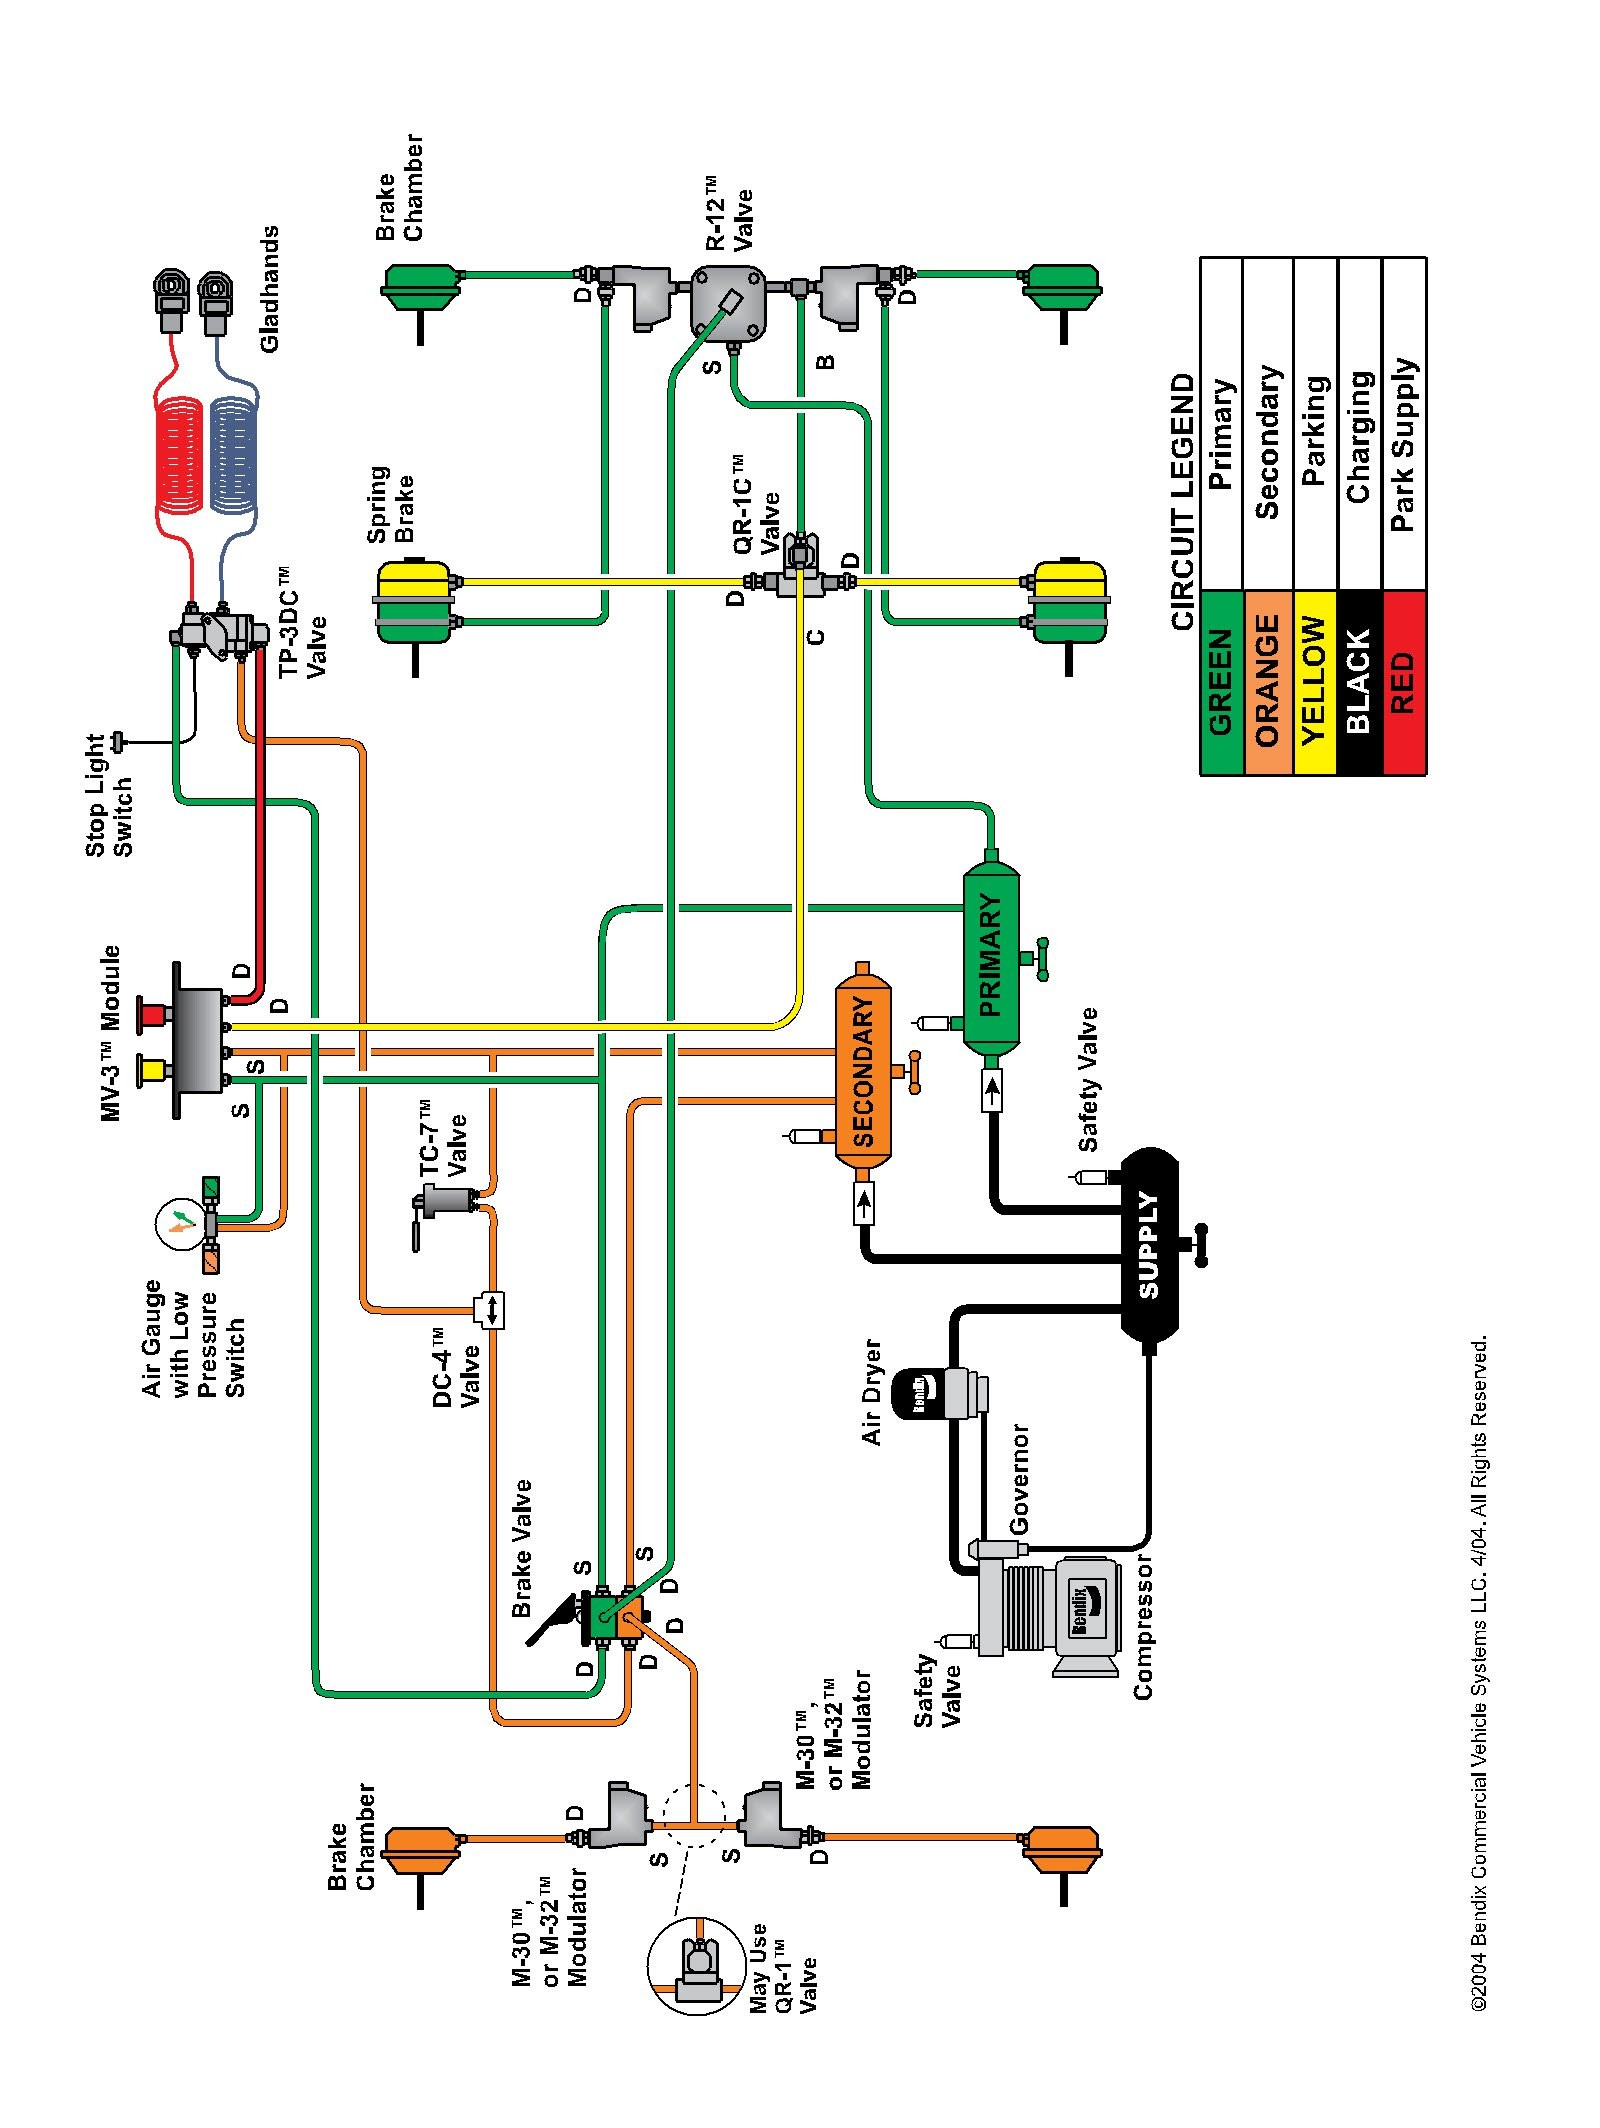 Diesel Engine Fuel System Diagram 01 7 3 Wire Wiring Powerstroke Google Search Of